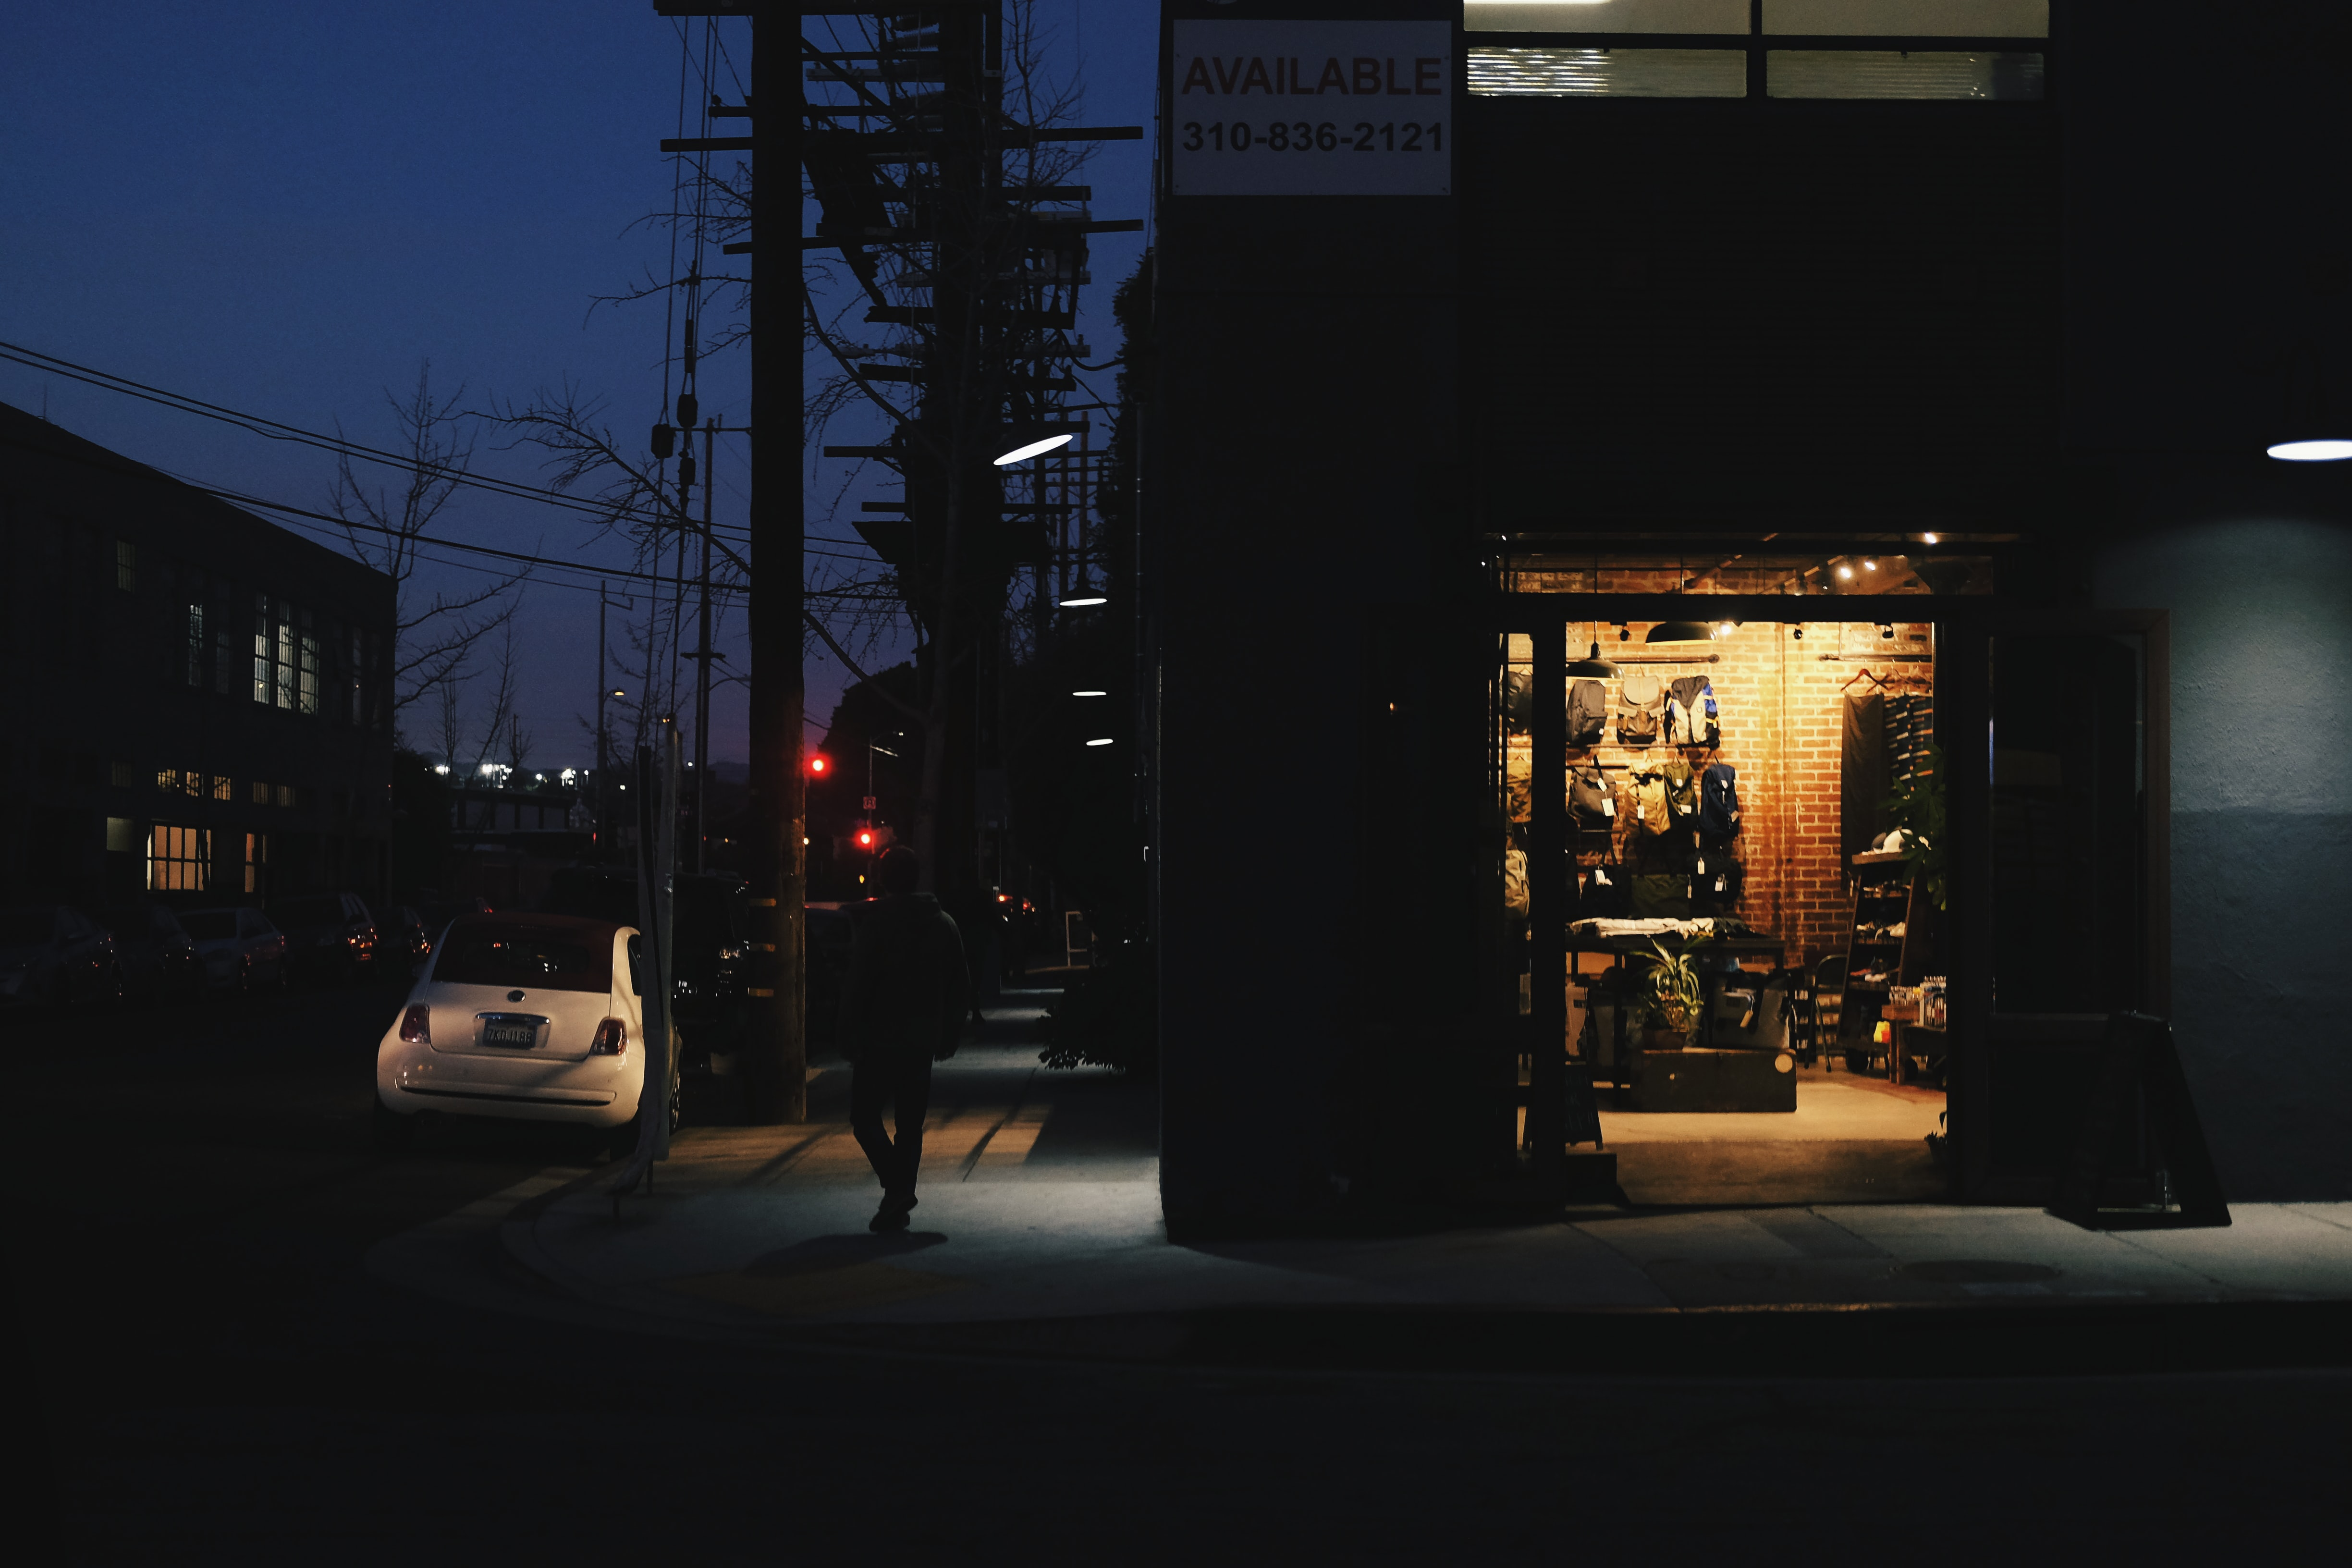 storefront by the street at night